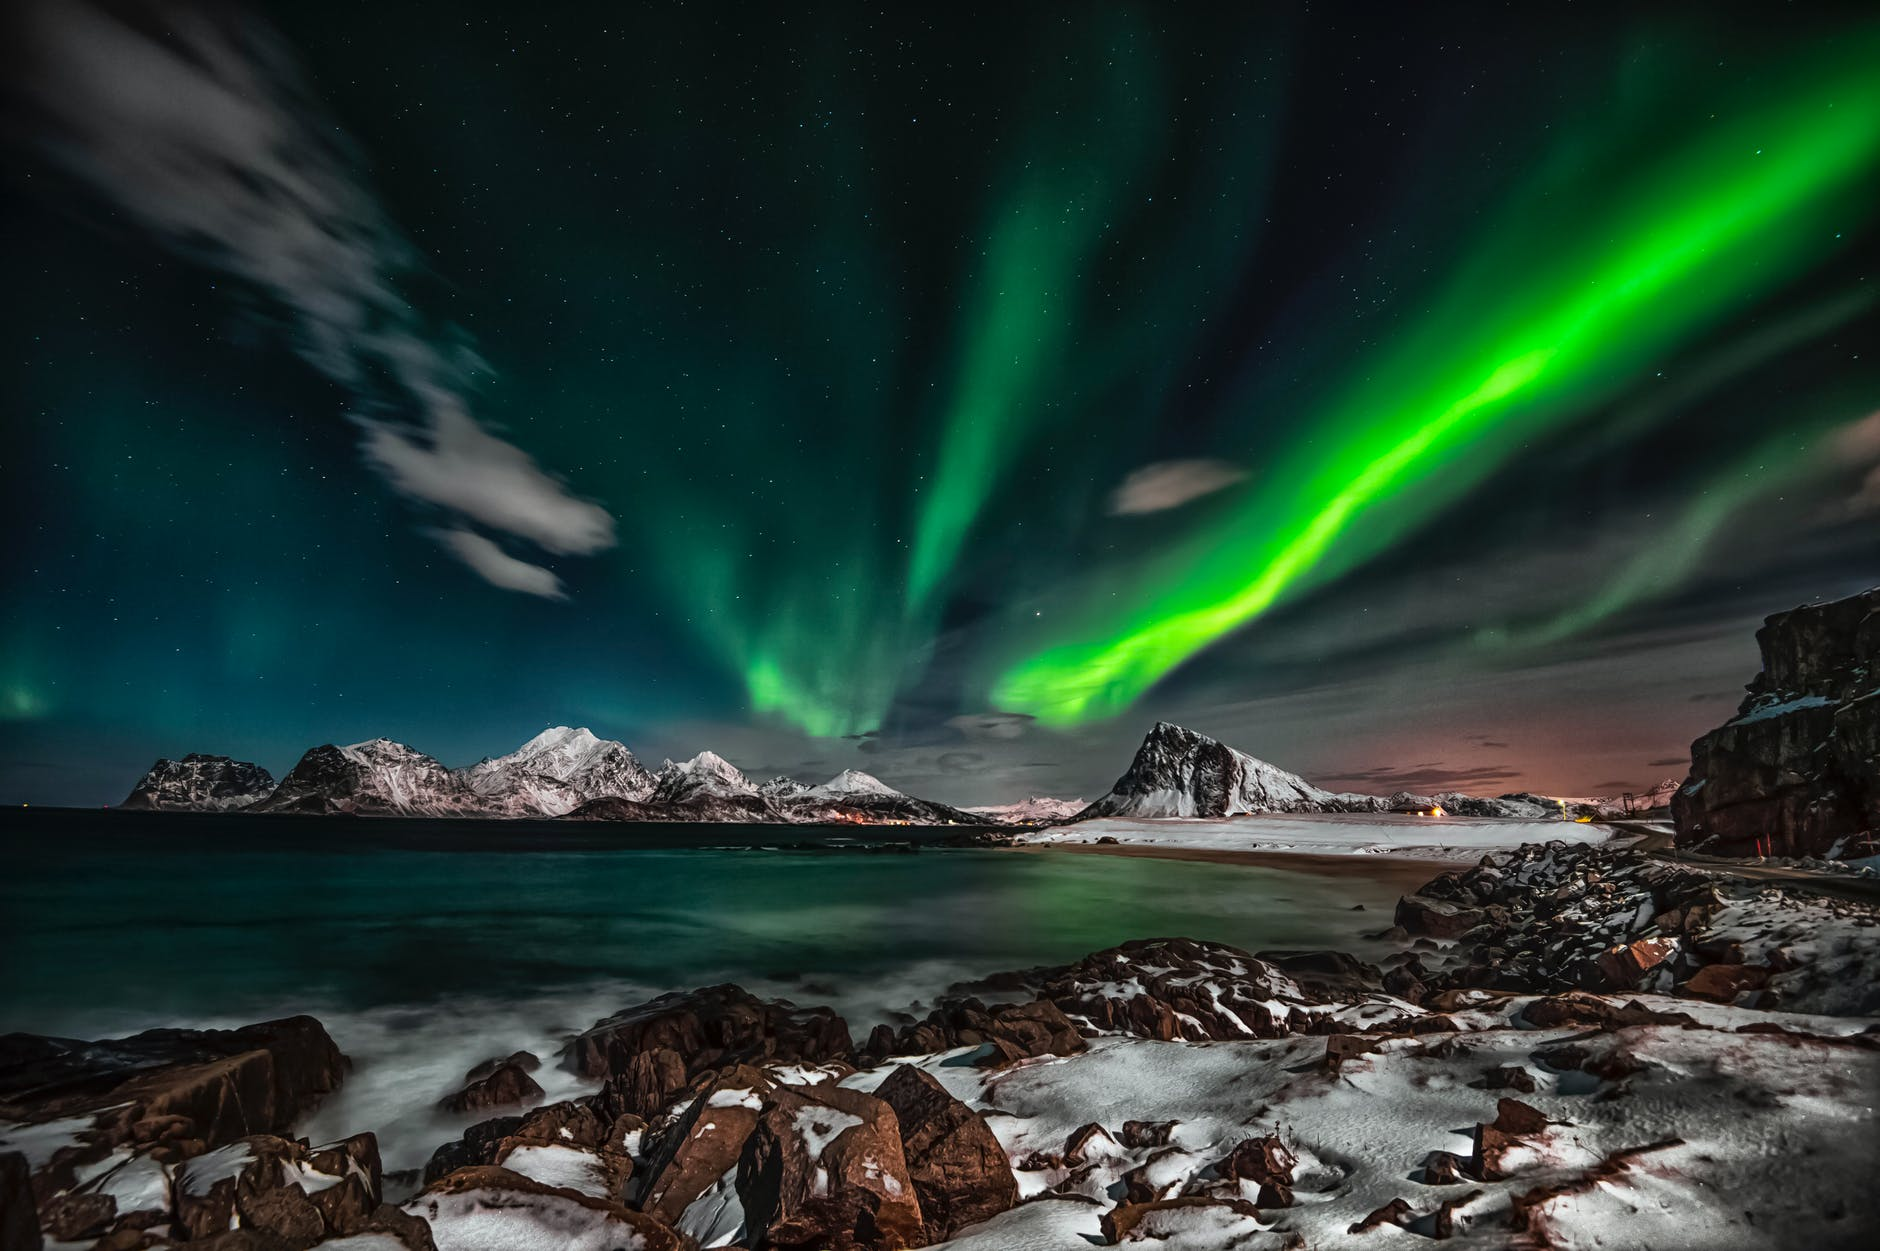 Norway: Best Place To See the Northern lights aurora borealis